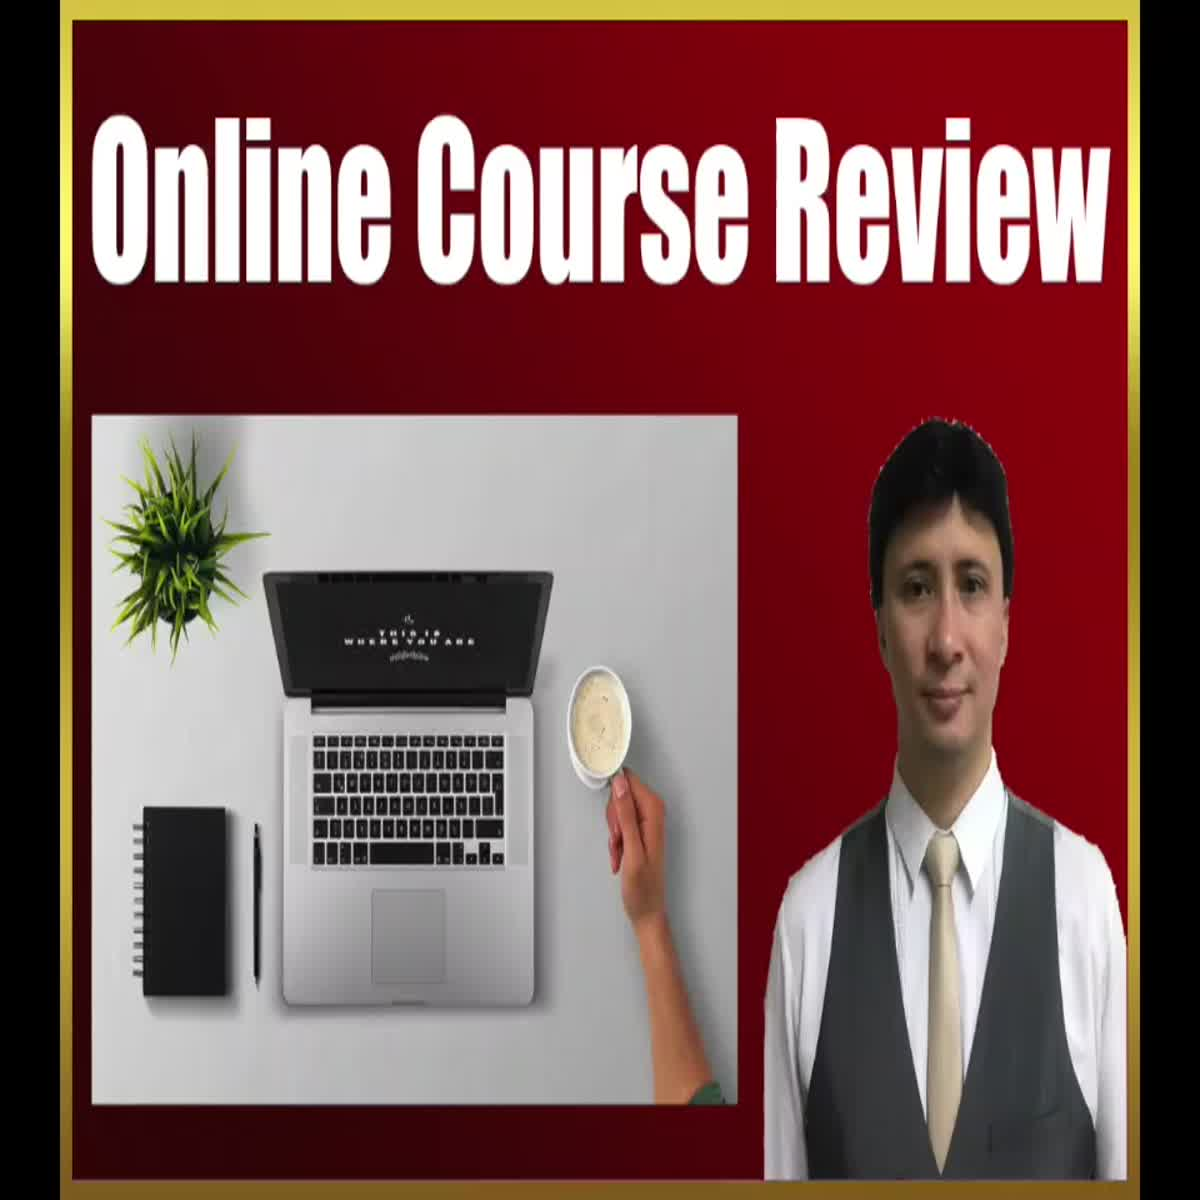 I will do a Profession Online Course Review